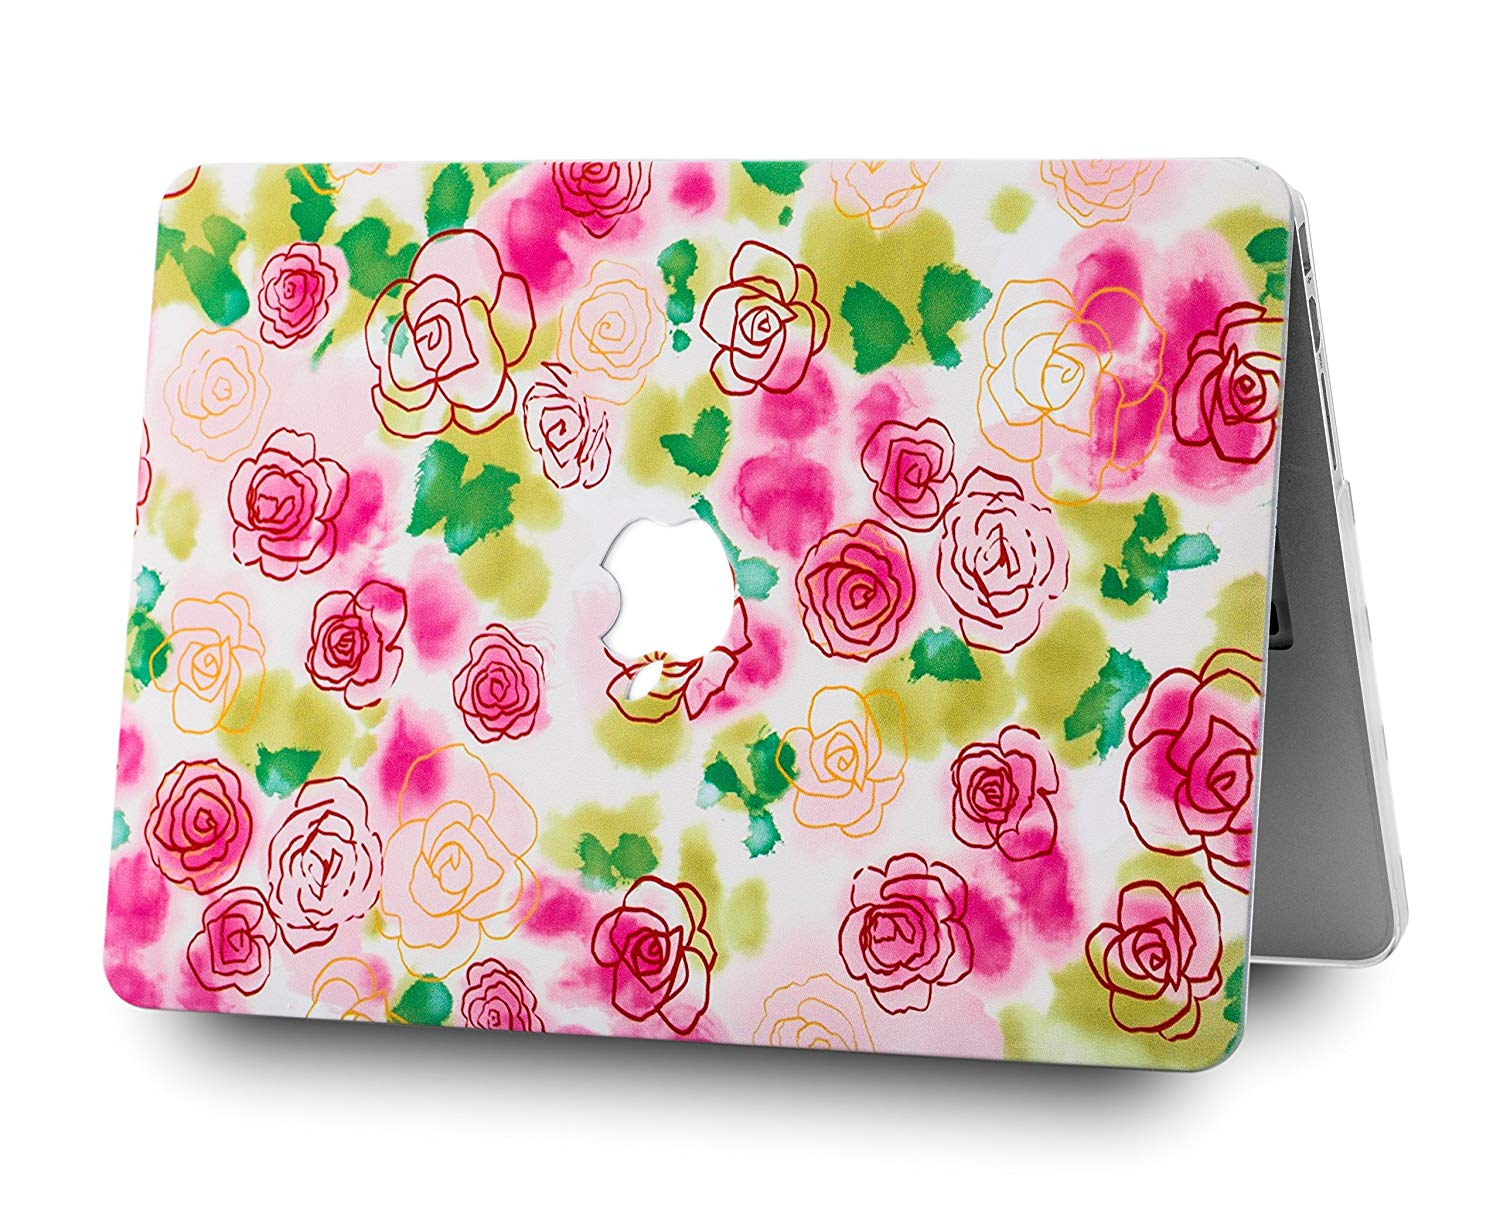 outlet store 025b6 78a42 Macbook Case - Flower Collection - Floral 26 – Luvcase